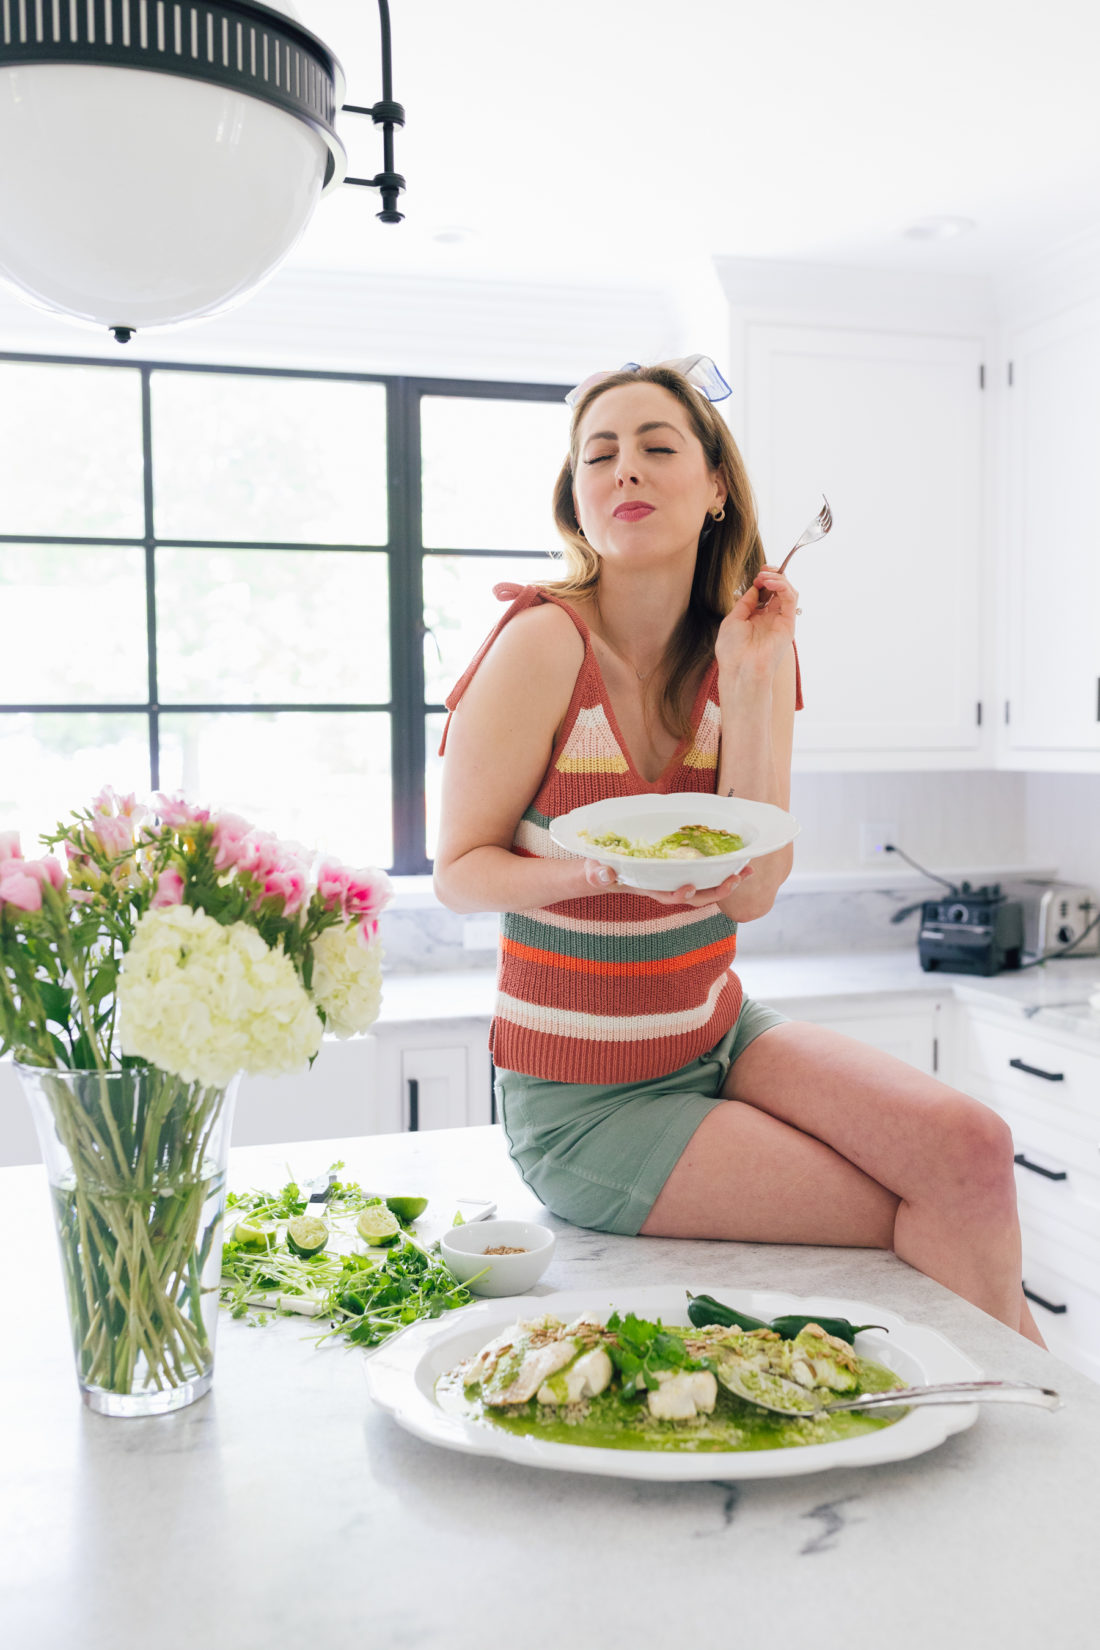 Eva Amurri Martino enjoys her Buster's Famous Green Fish on the kitchen island of her Connecticut home